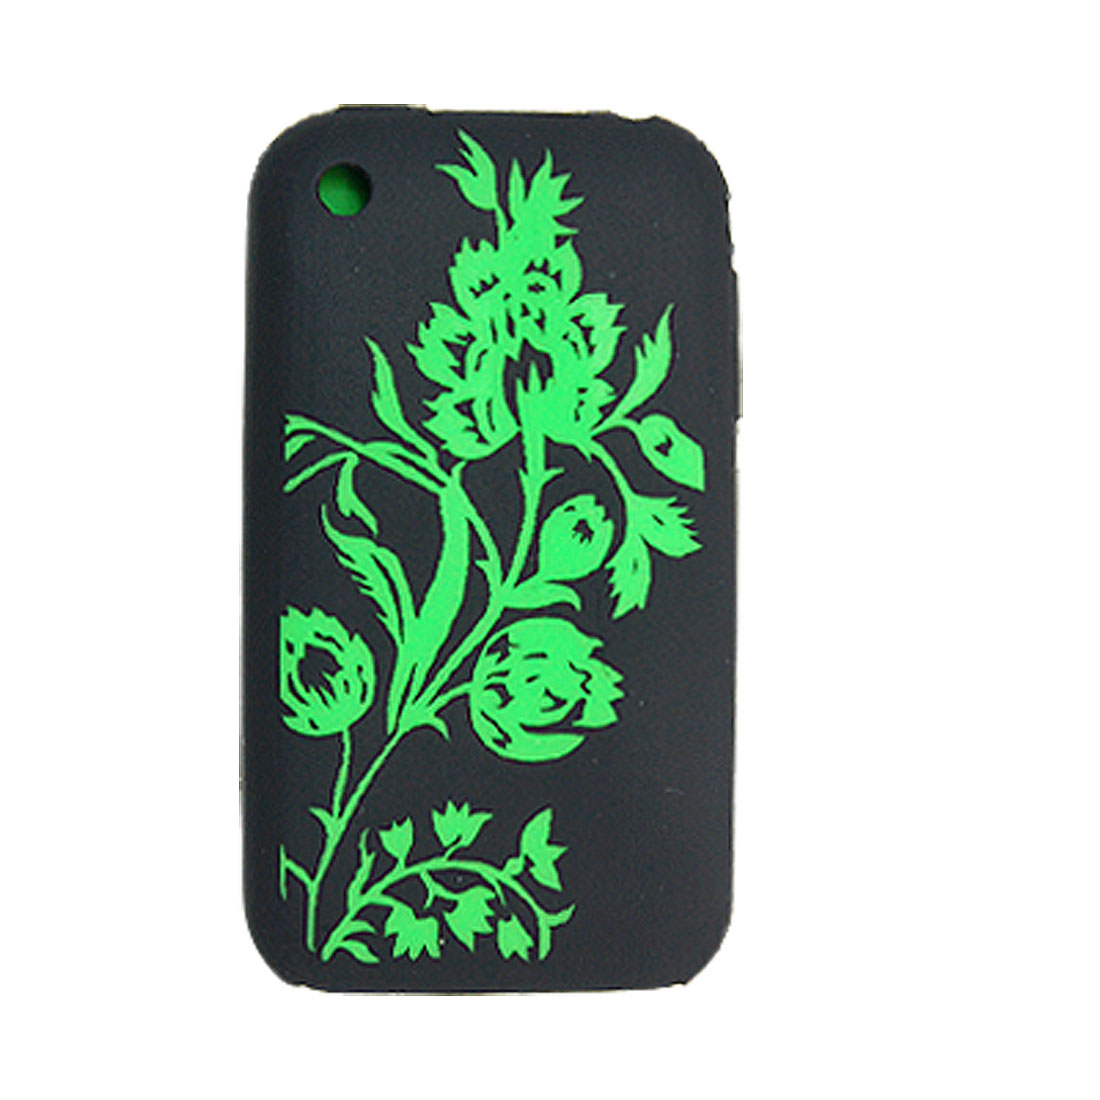 Cut Flower Case Silicone Cover Screen Guard for iPhone 3G